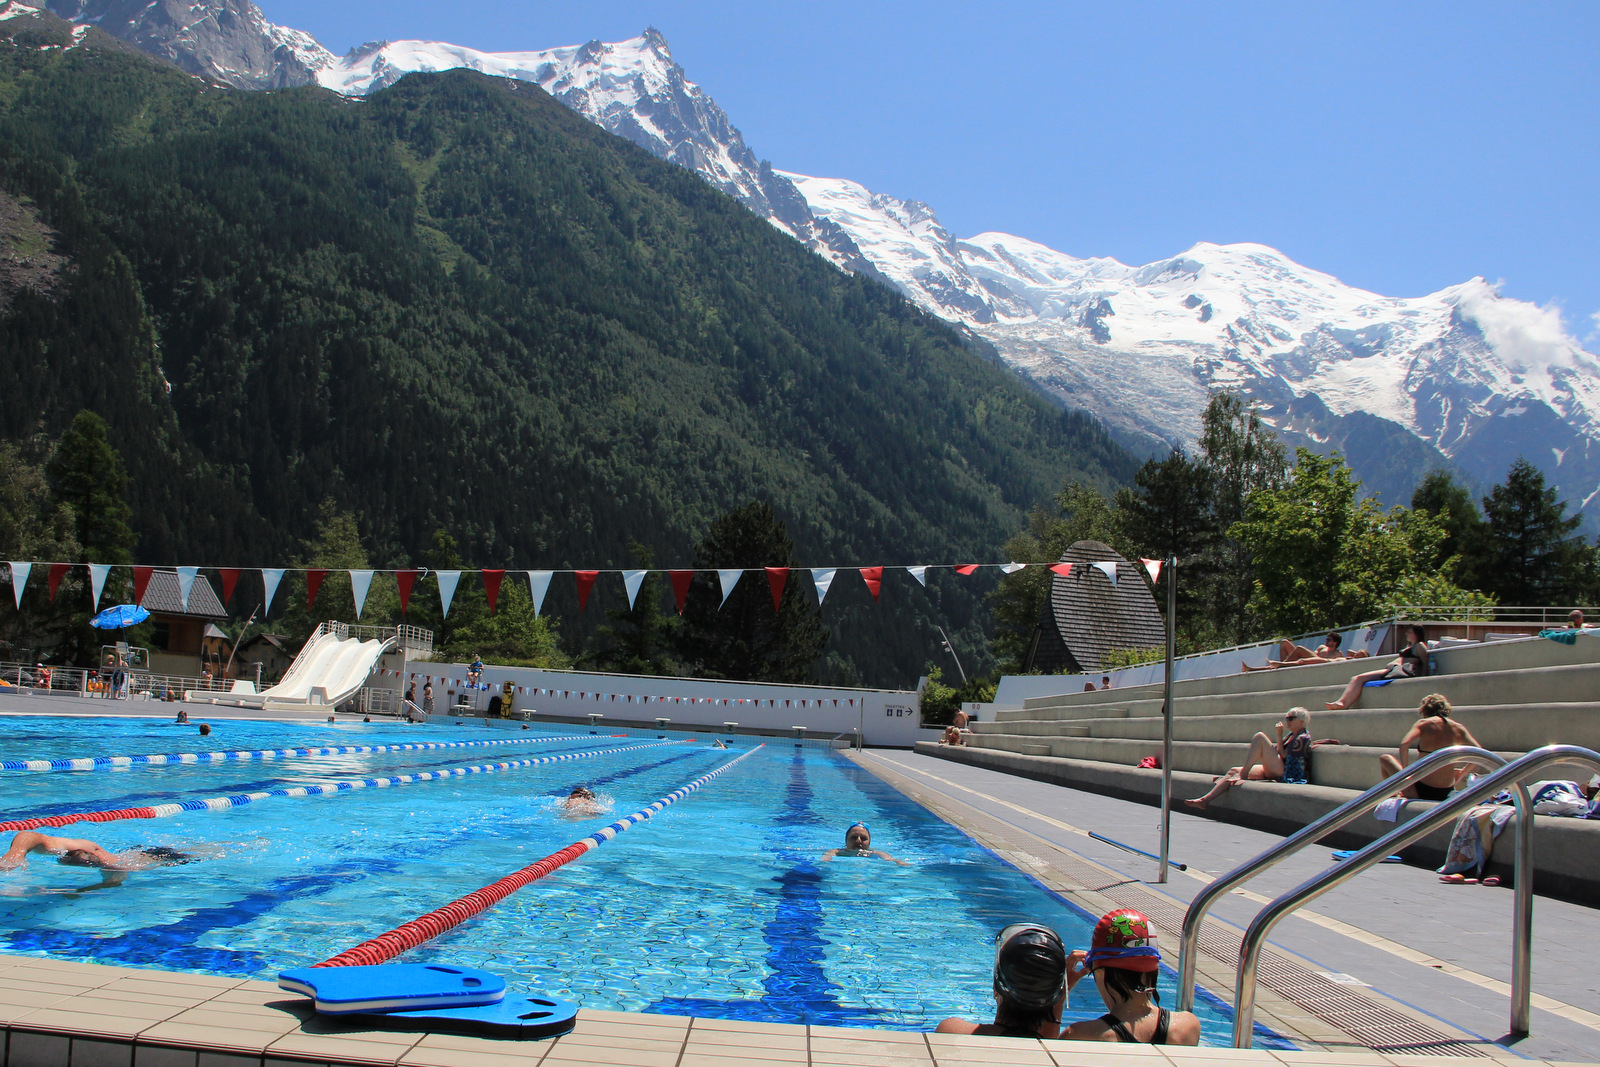 Sunshine and spas cool tips for hot days chamonix blog for Chamonix piscine